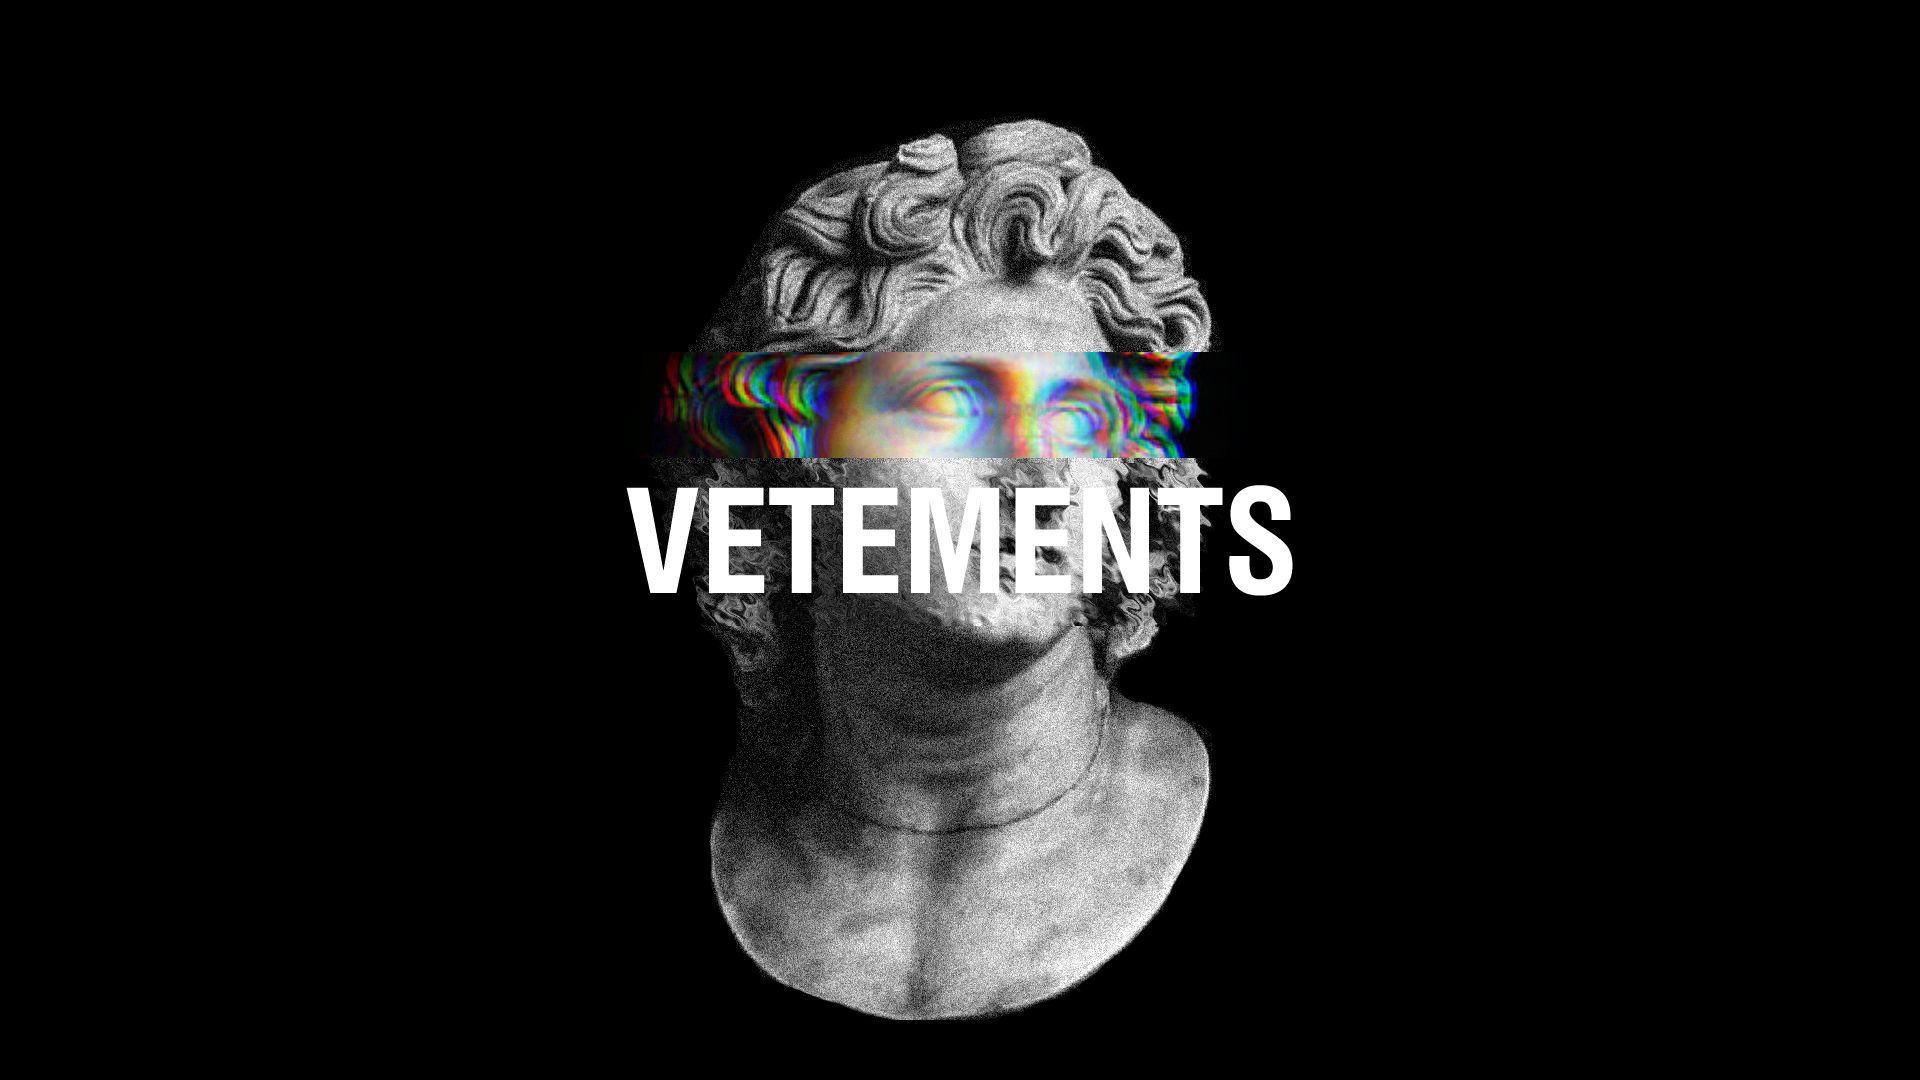 I Made A Simplistic Vetements Background 1920x1080 Need Iphone 6s Plus Wallpaper Background For Iphone6splus Follow Iphone 6s Plus 3wallpaper Iskusstvo